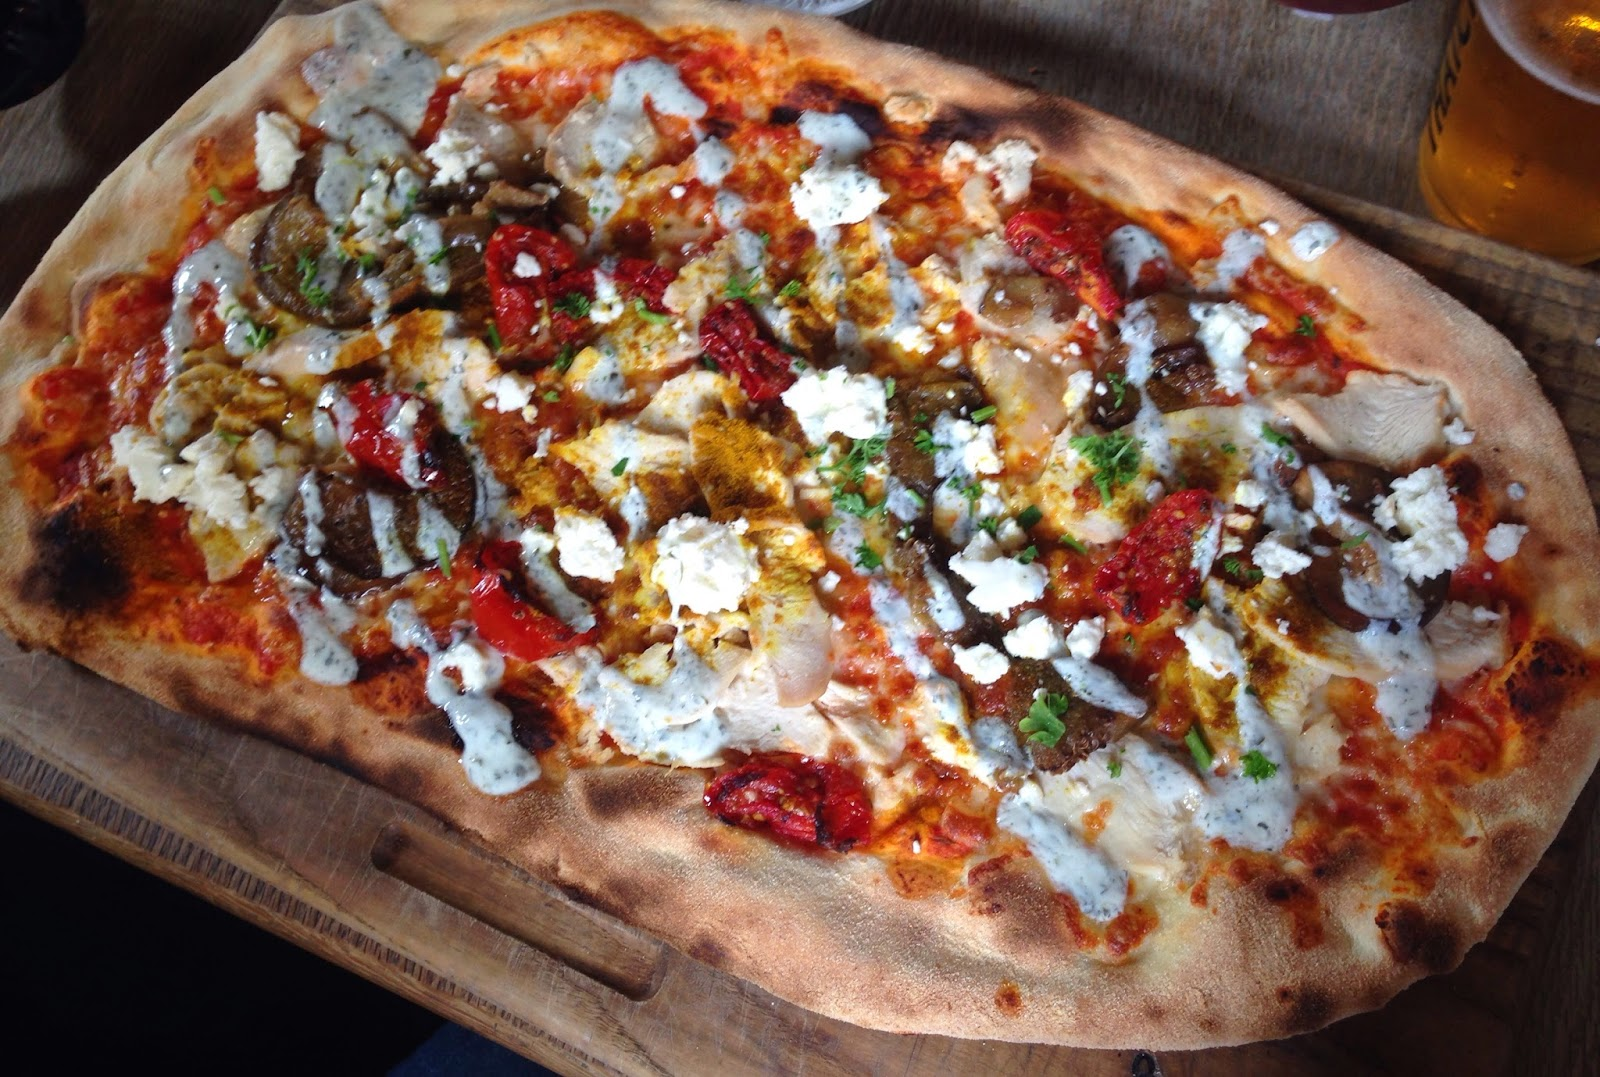 The Mumbai pizza at The Bulls Head, Repton,